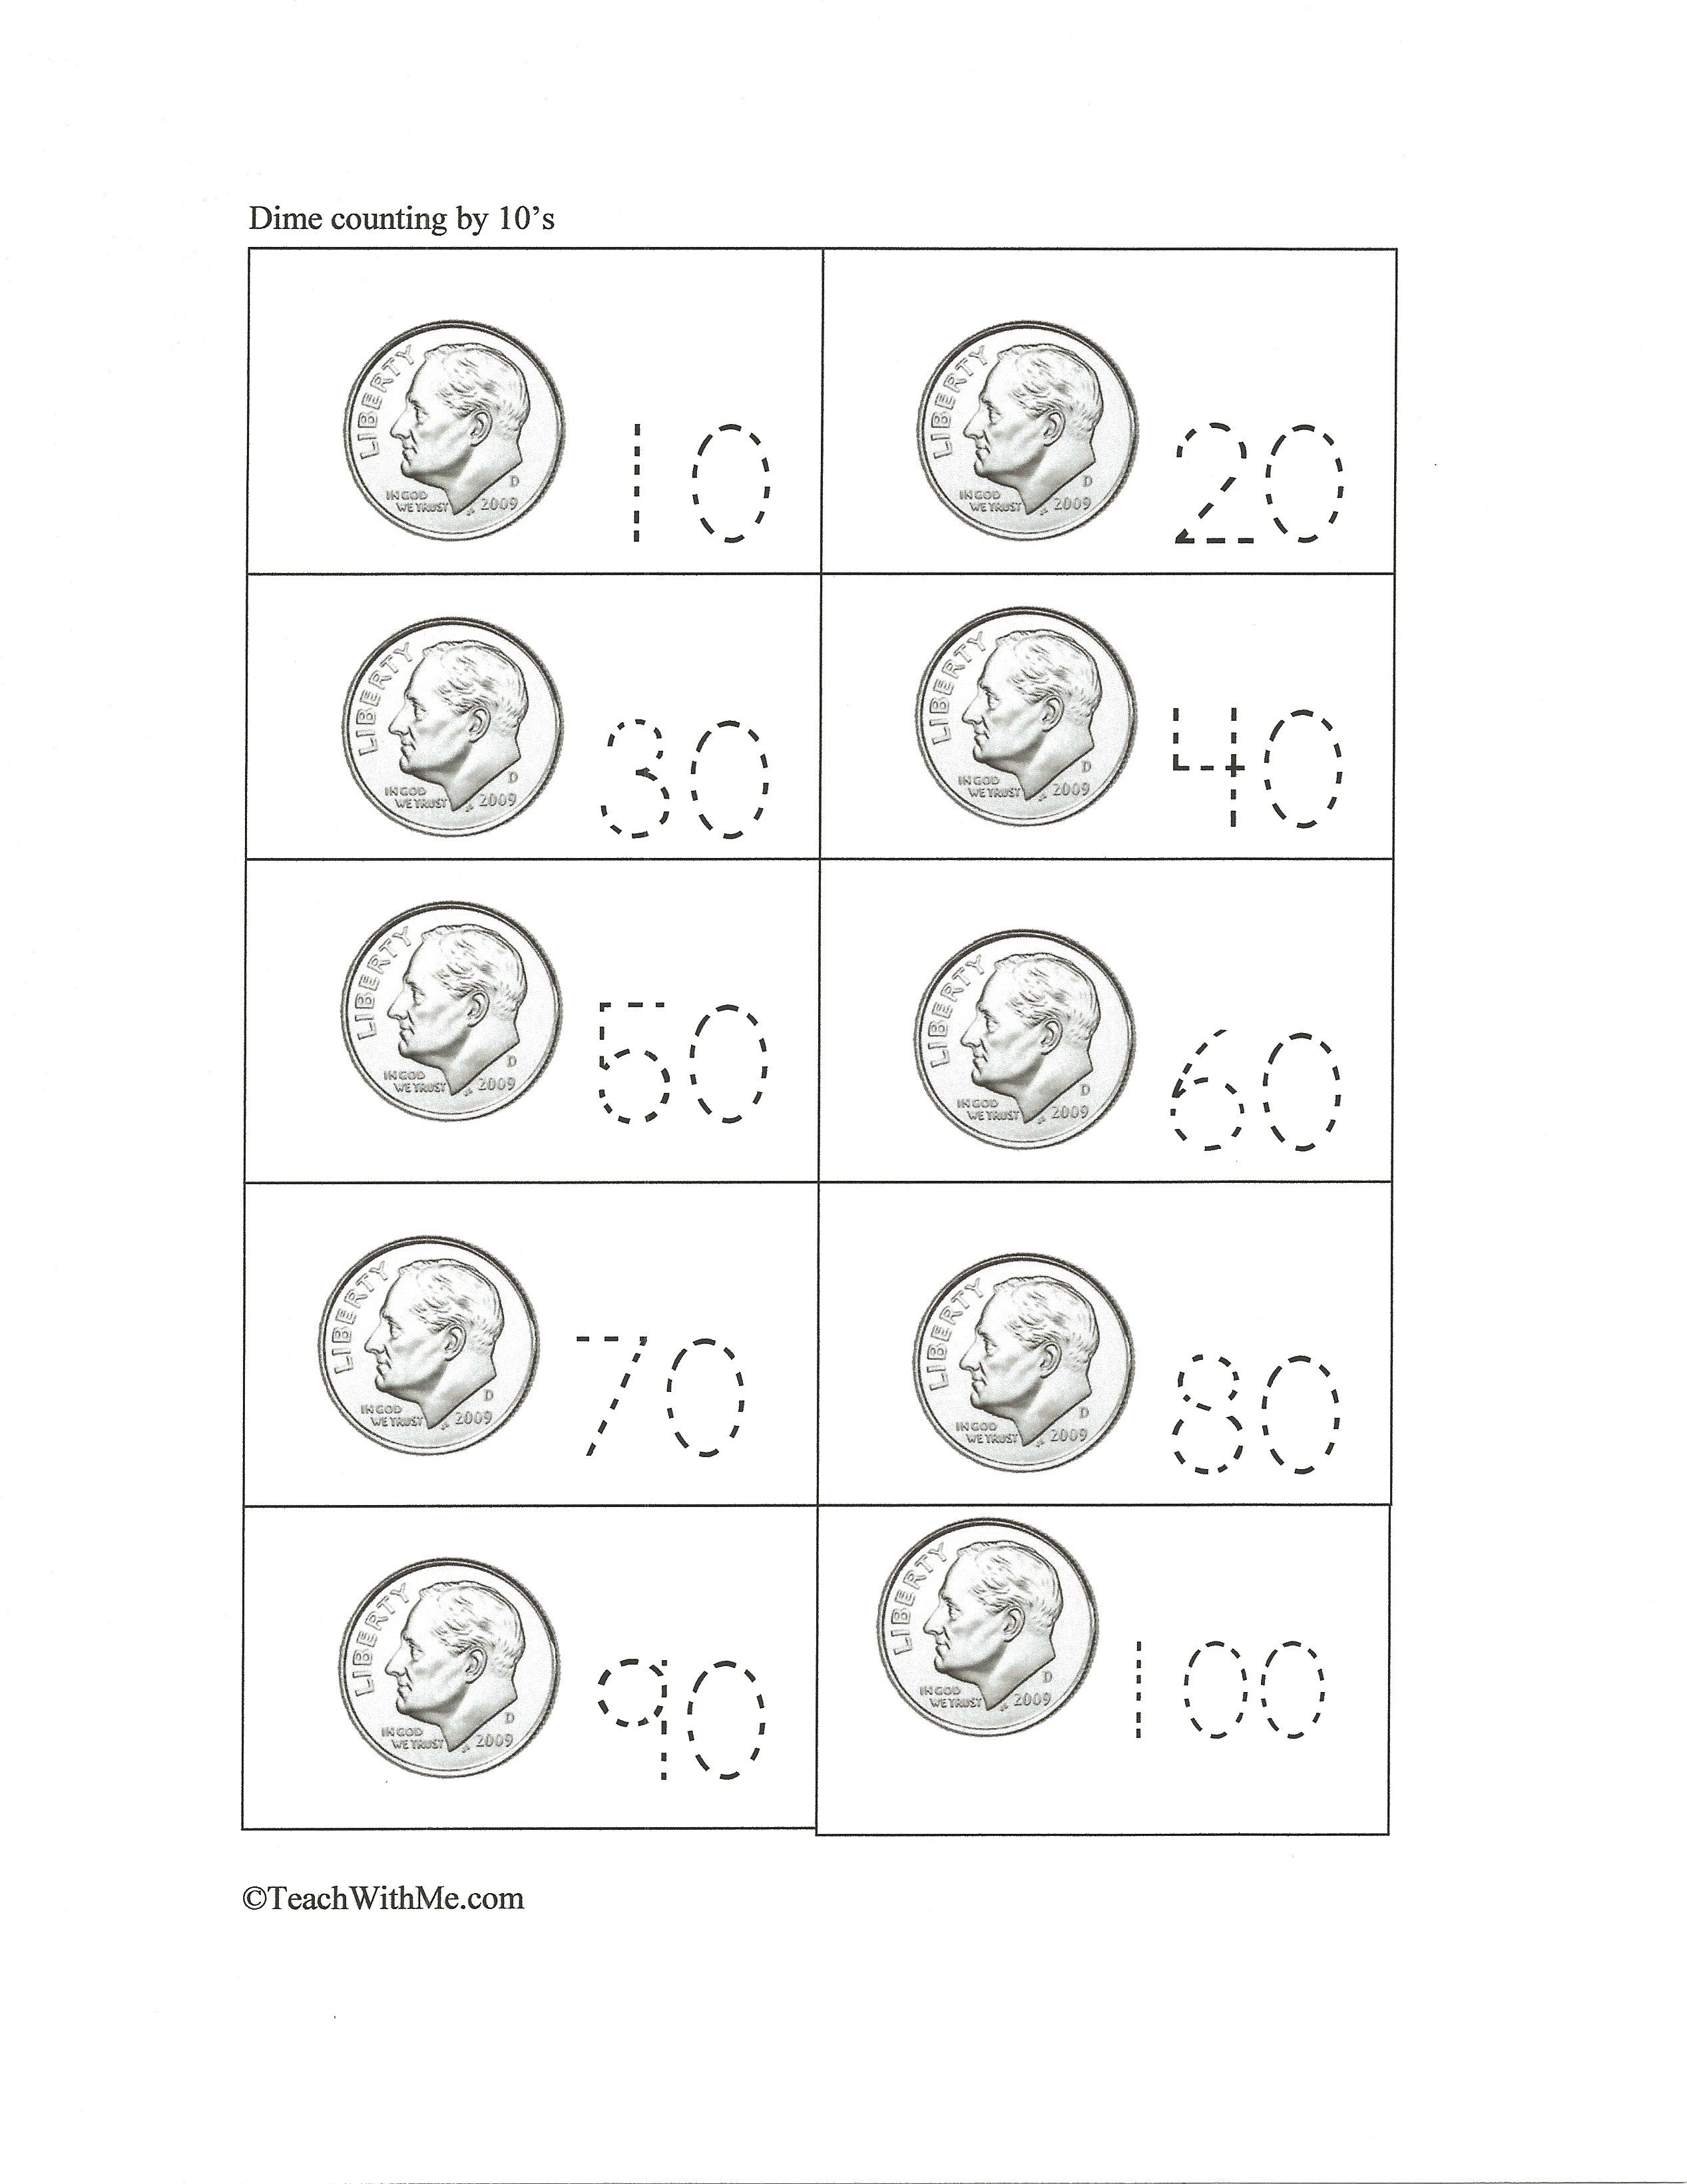 Counting Dimes By 10 S Free Templates